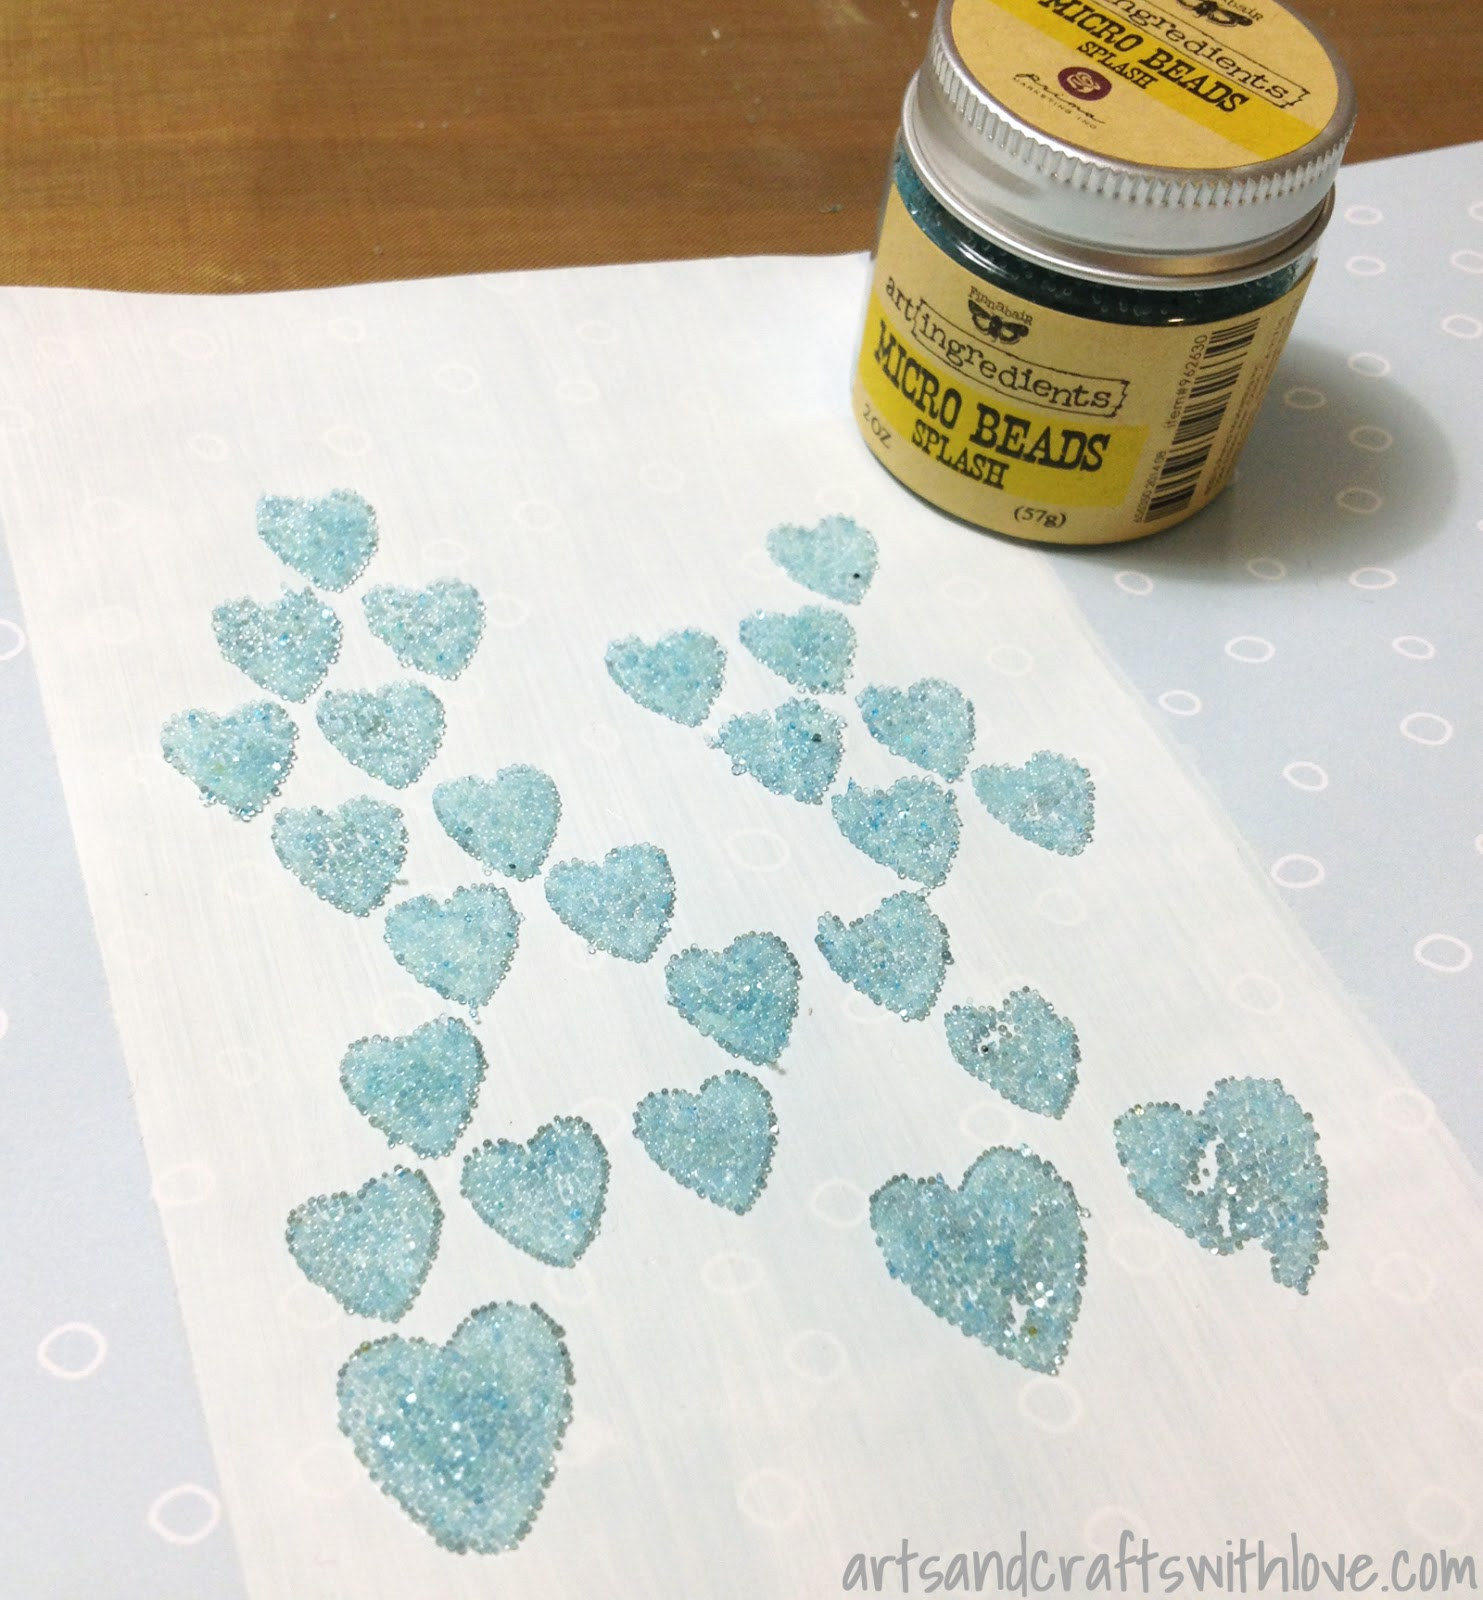 Texture paste with micro beads